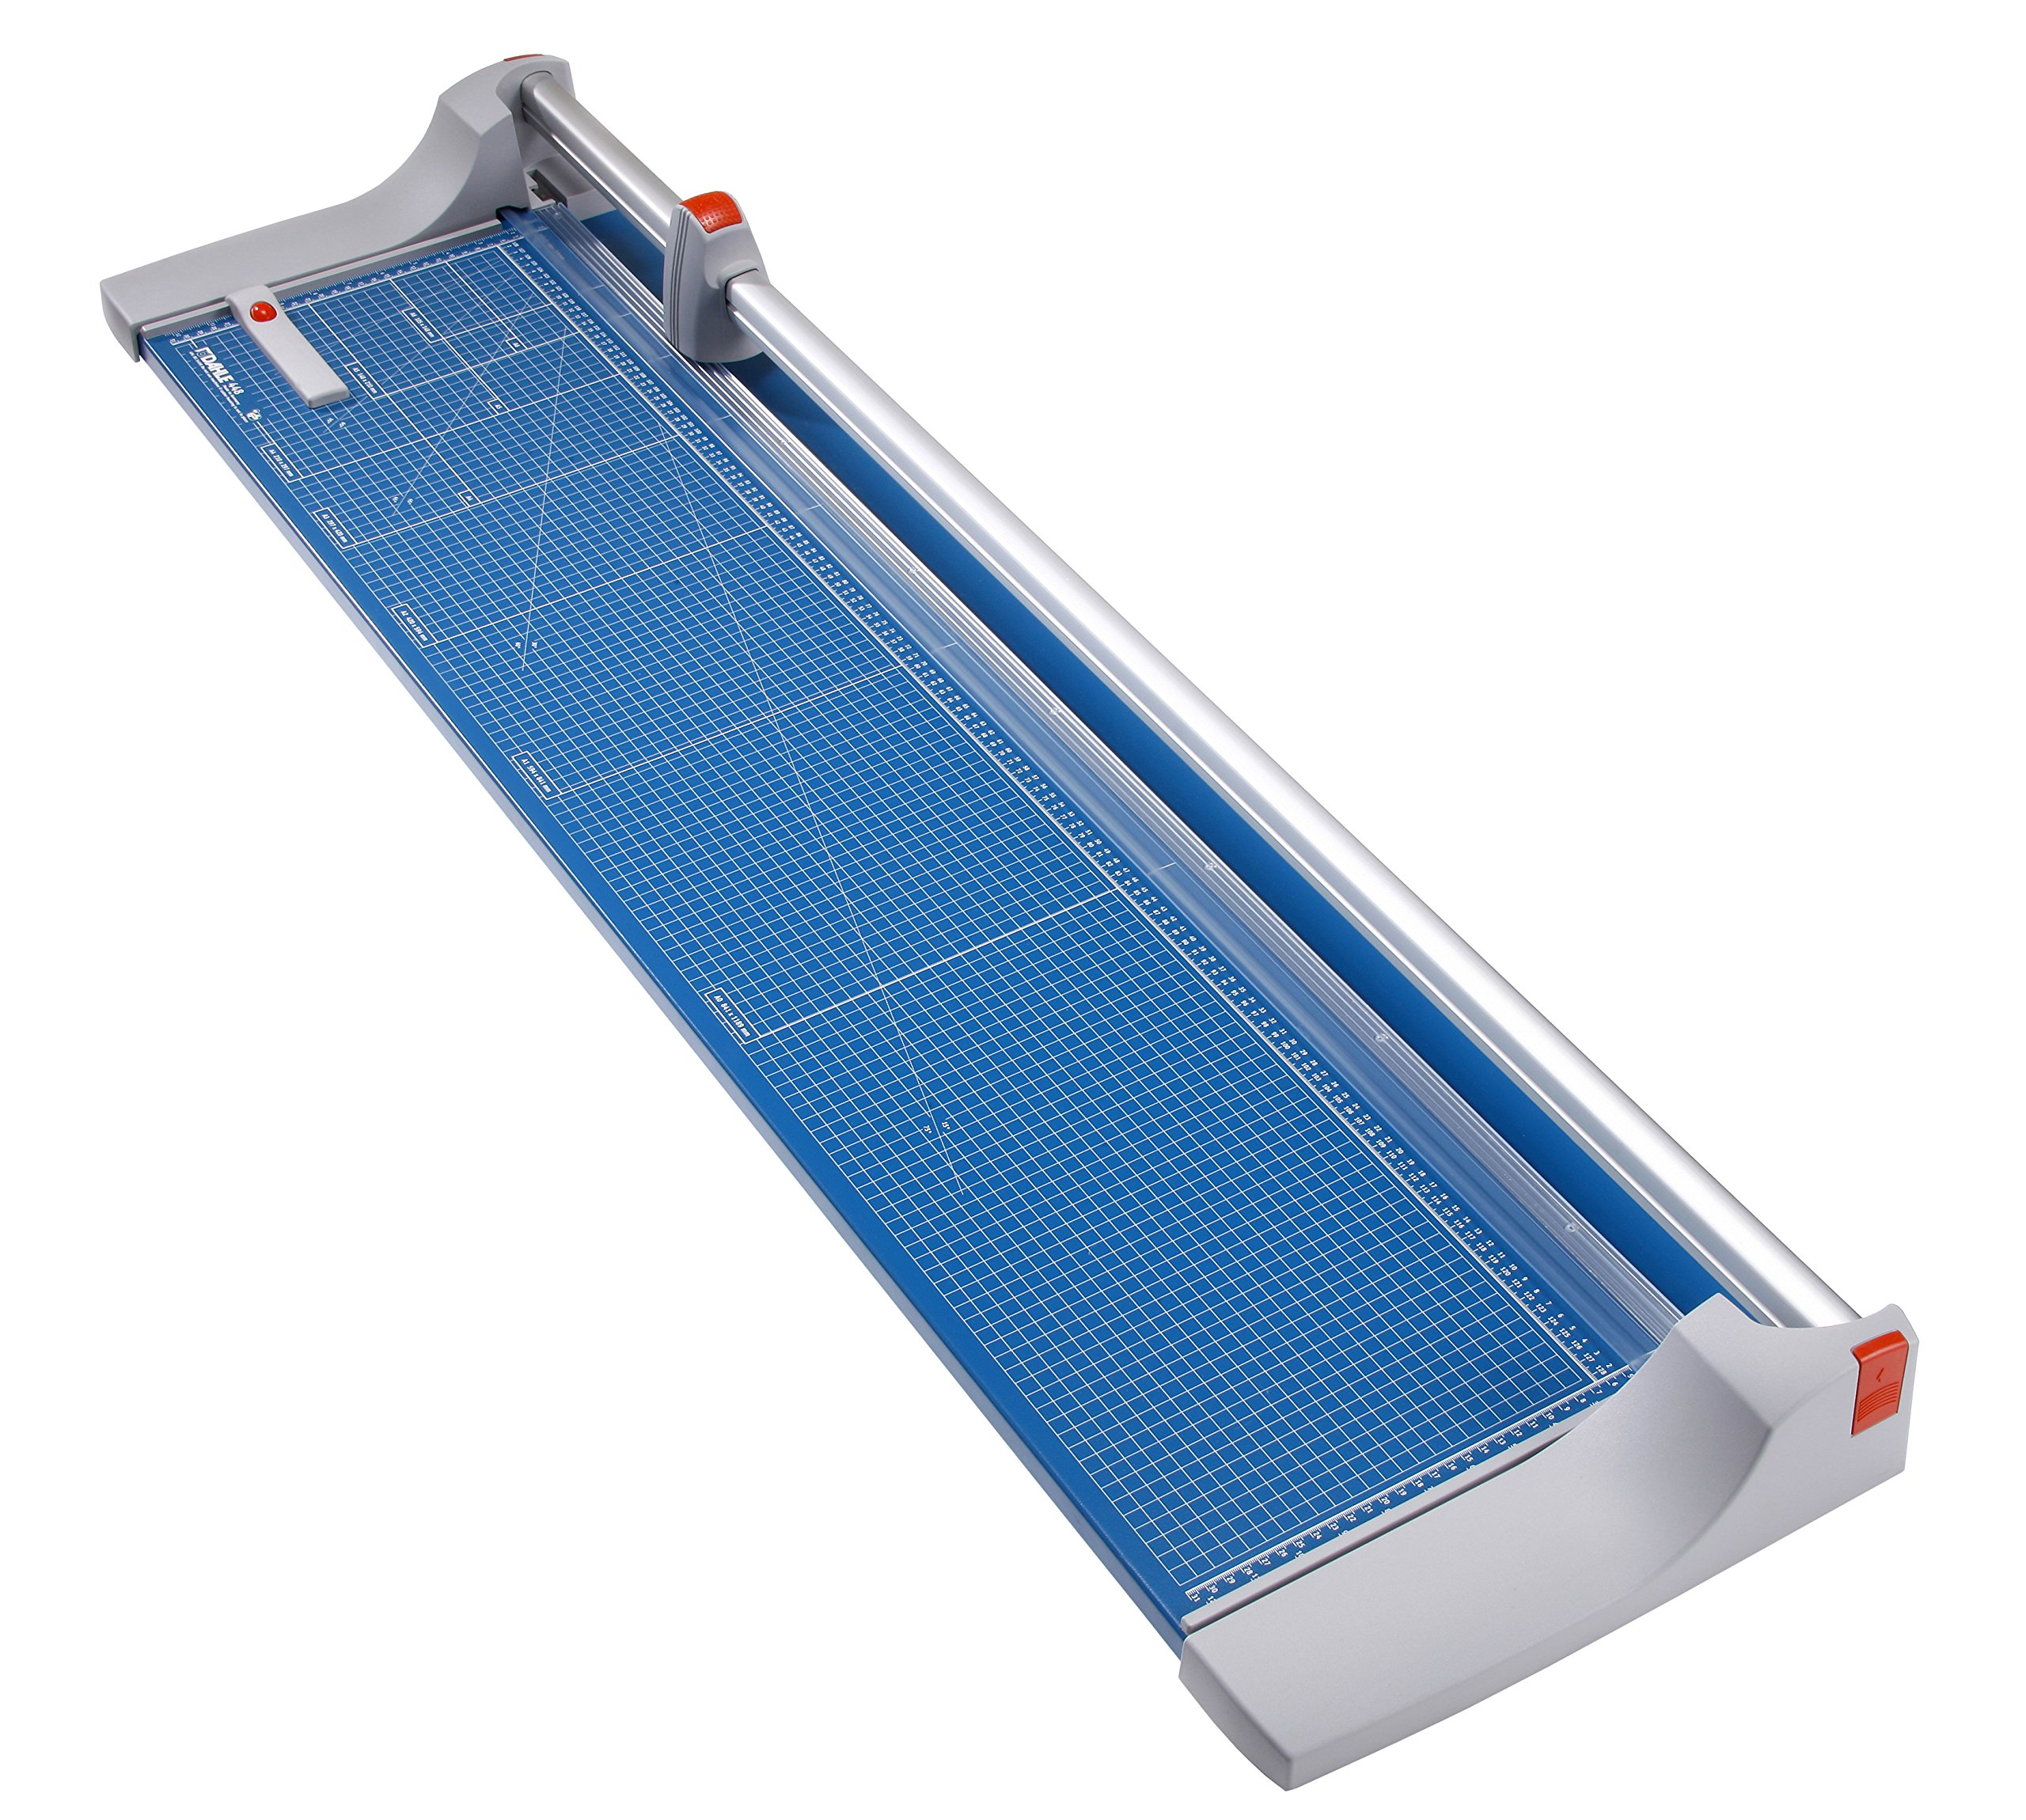 Dahle 448 Premium Rolling Trimmer, 51-1/8'' Cut Length, 20 Sheet Capacity, Self-Sharpening, Automatic Clamp, German Engineered Paper Cutter